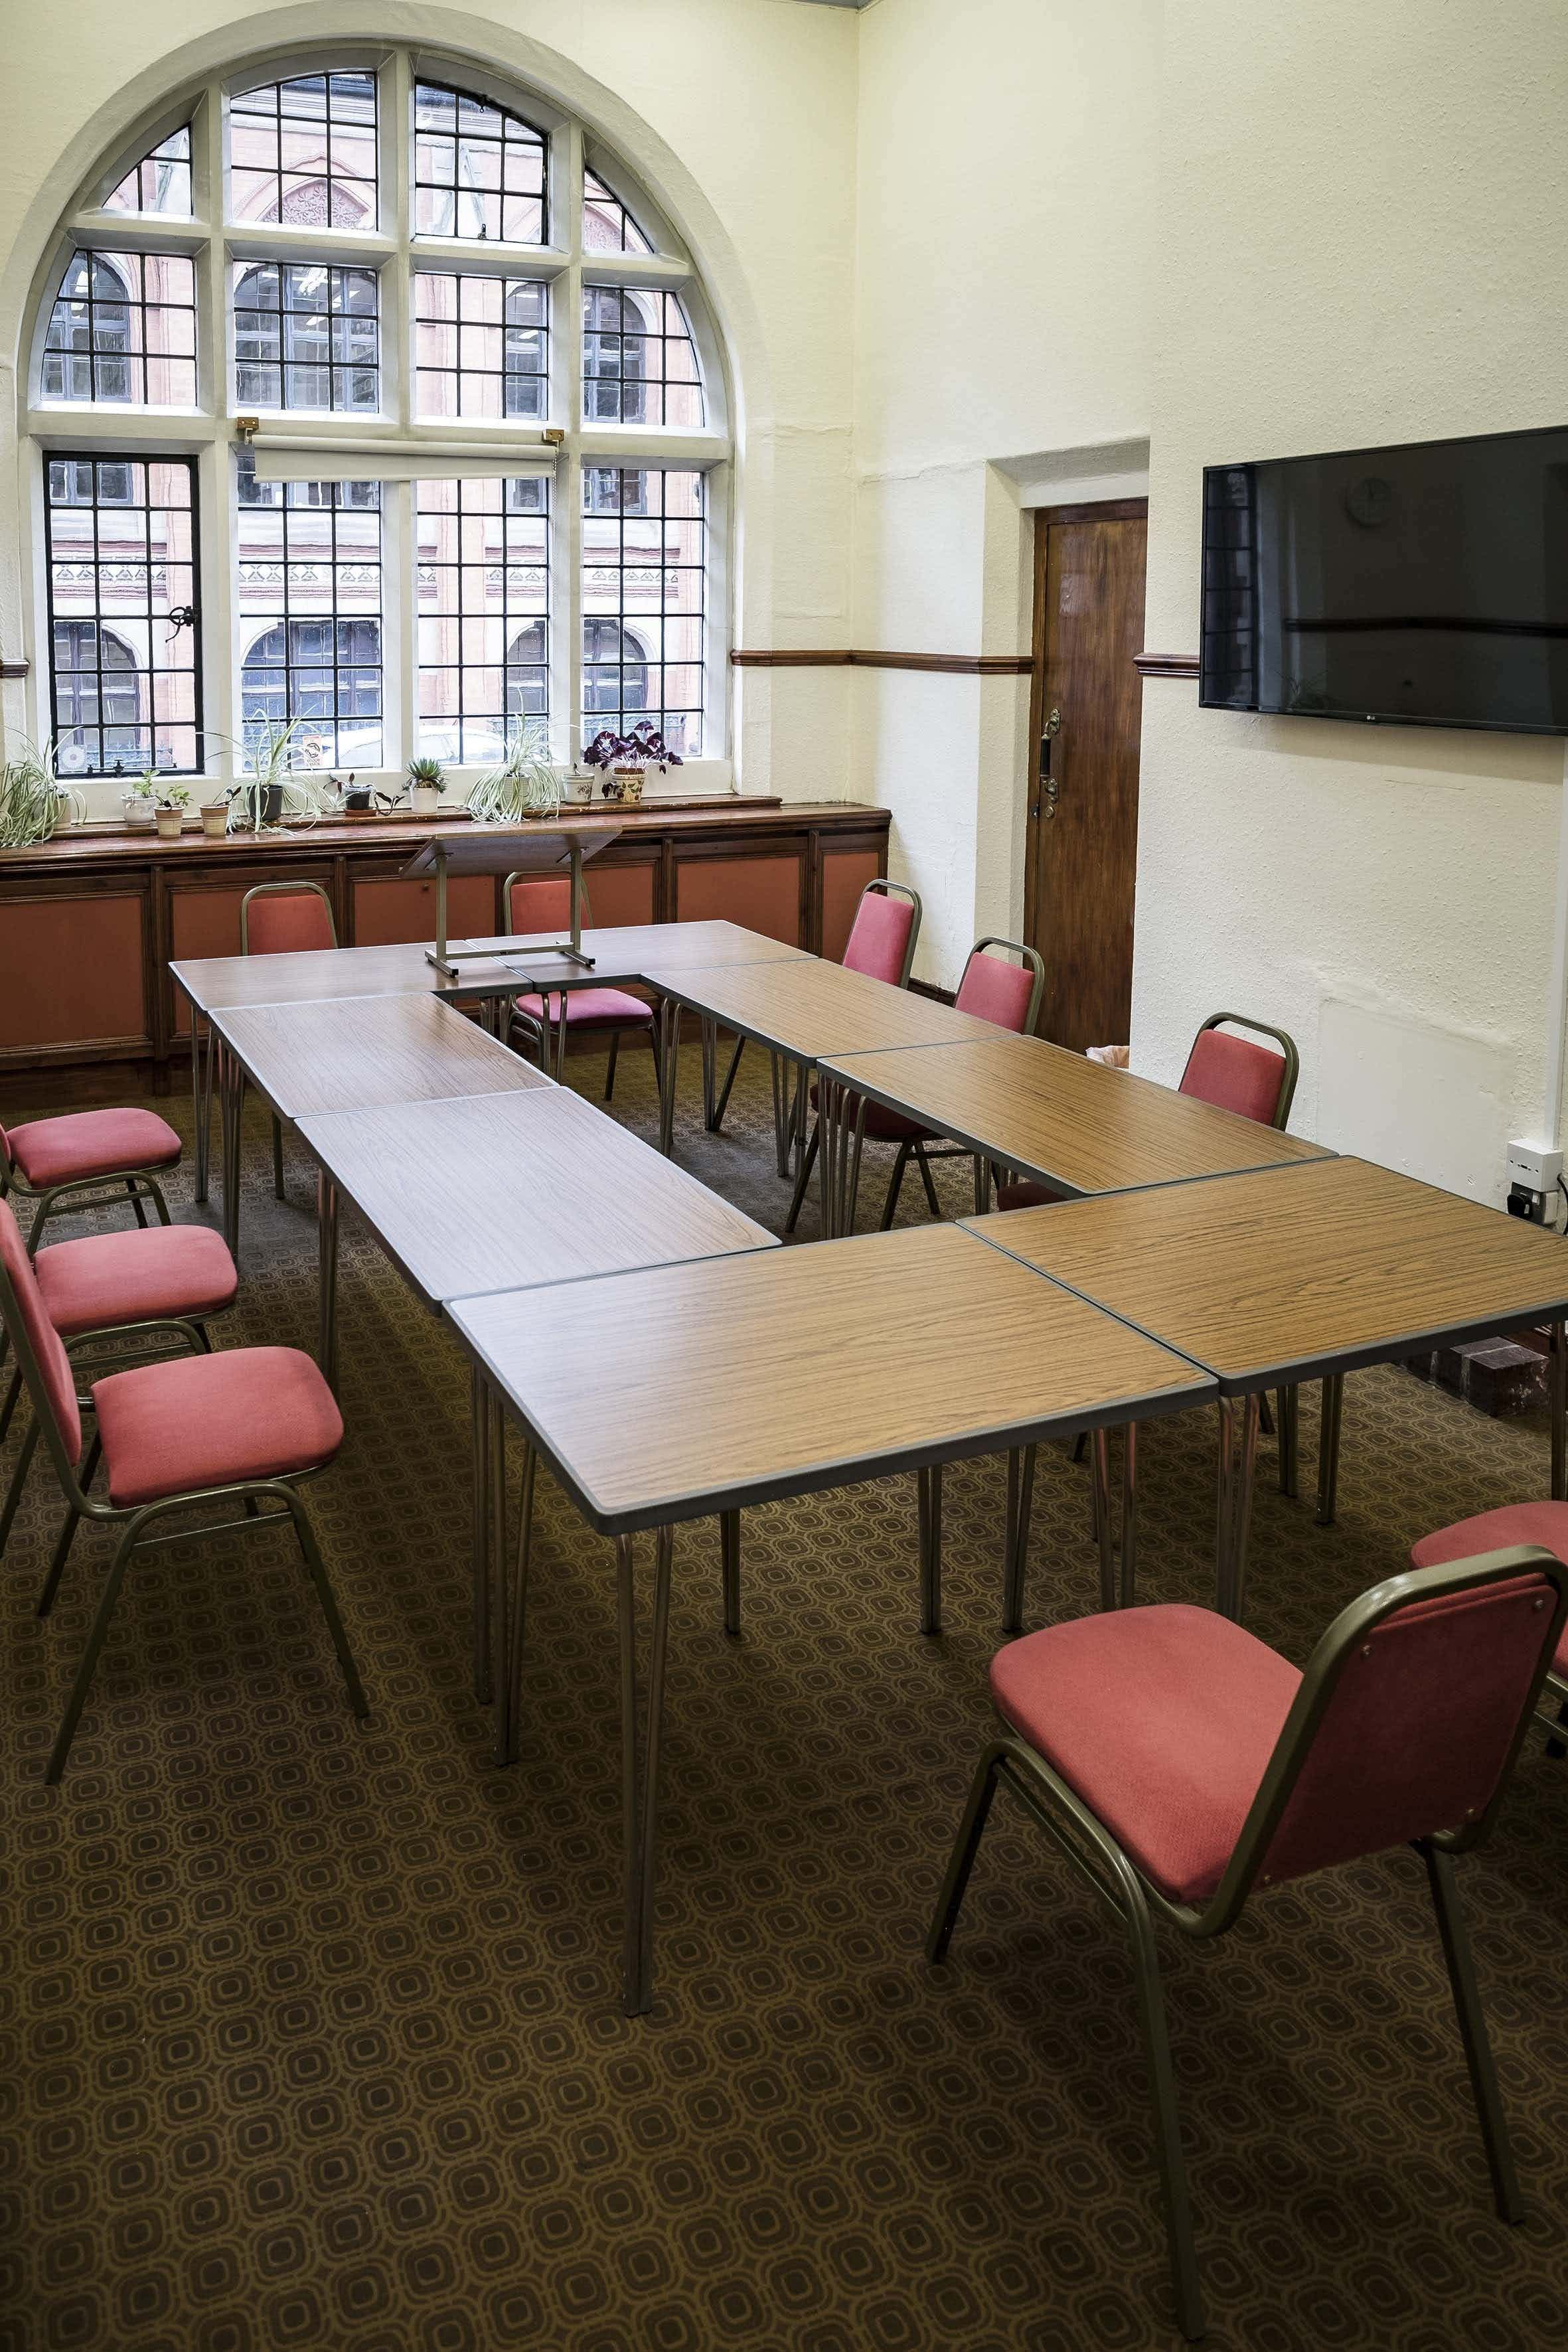 Woodward Room, The Birmingham and Midland Institute